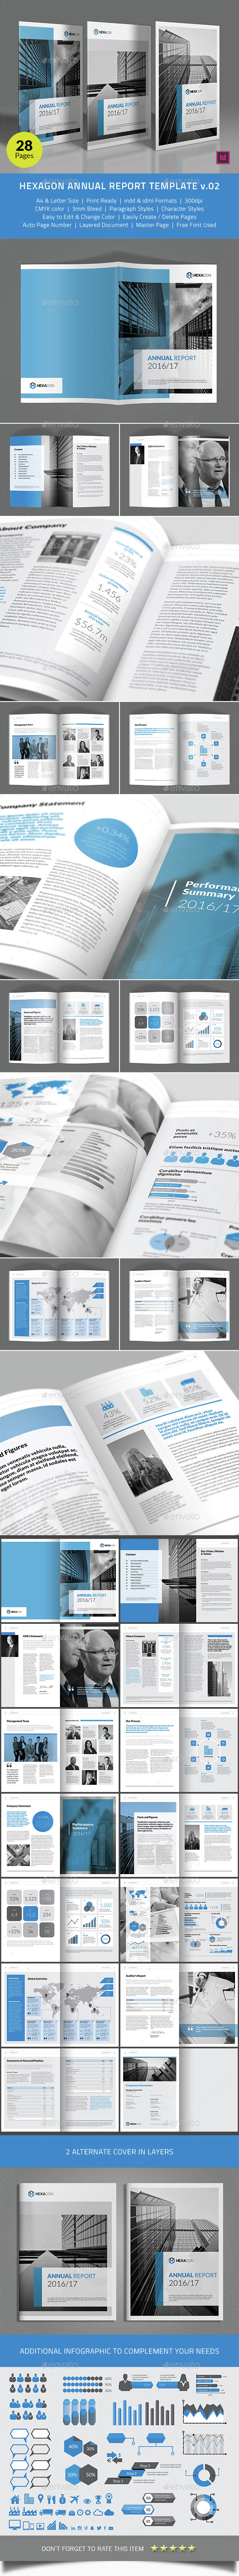 Hexagon Annual Report Template v02 - Corporate Brochures